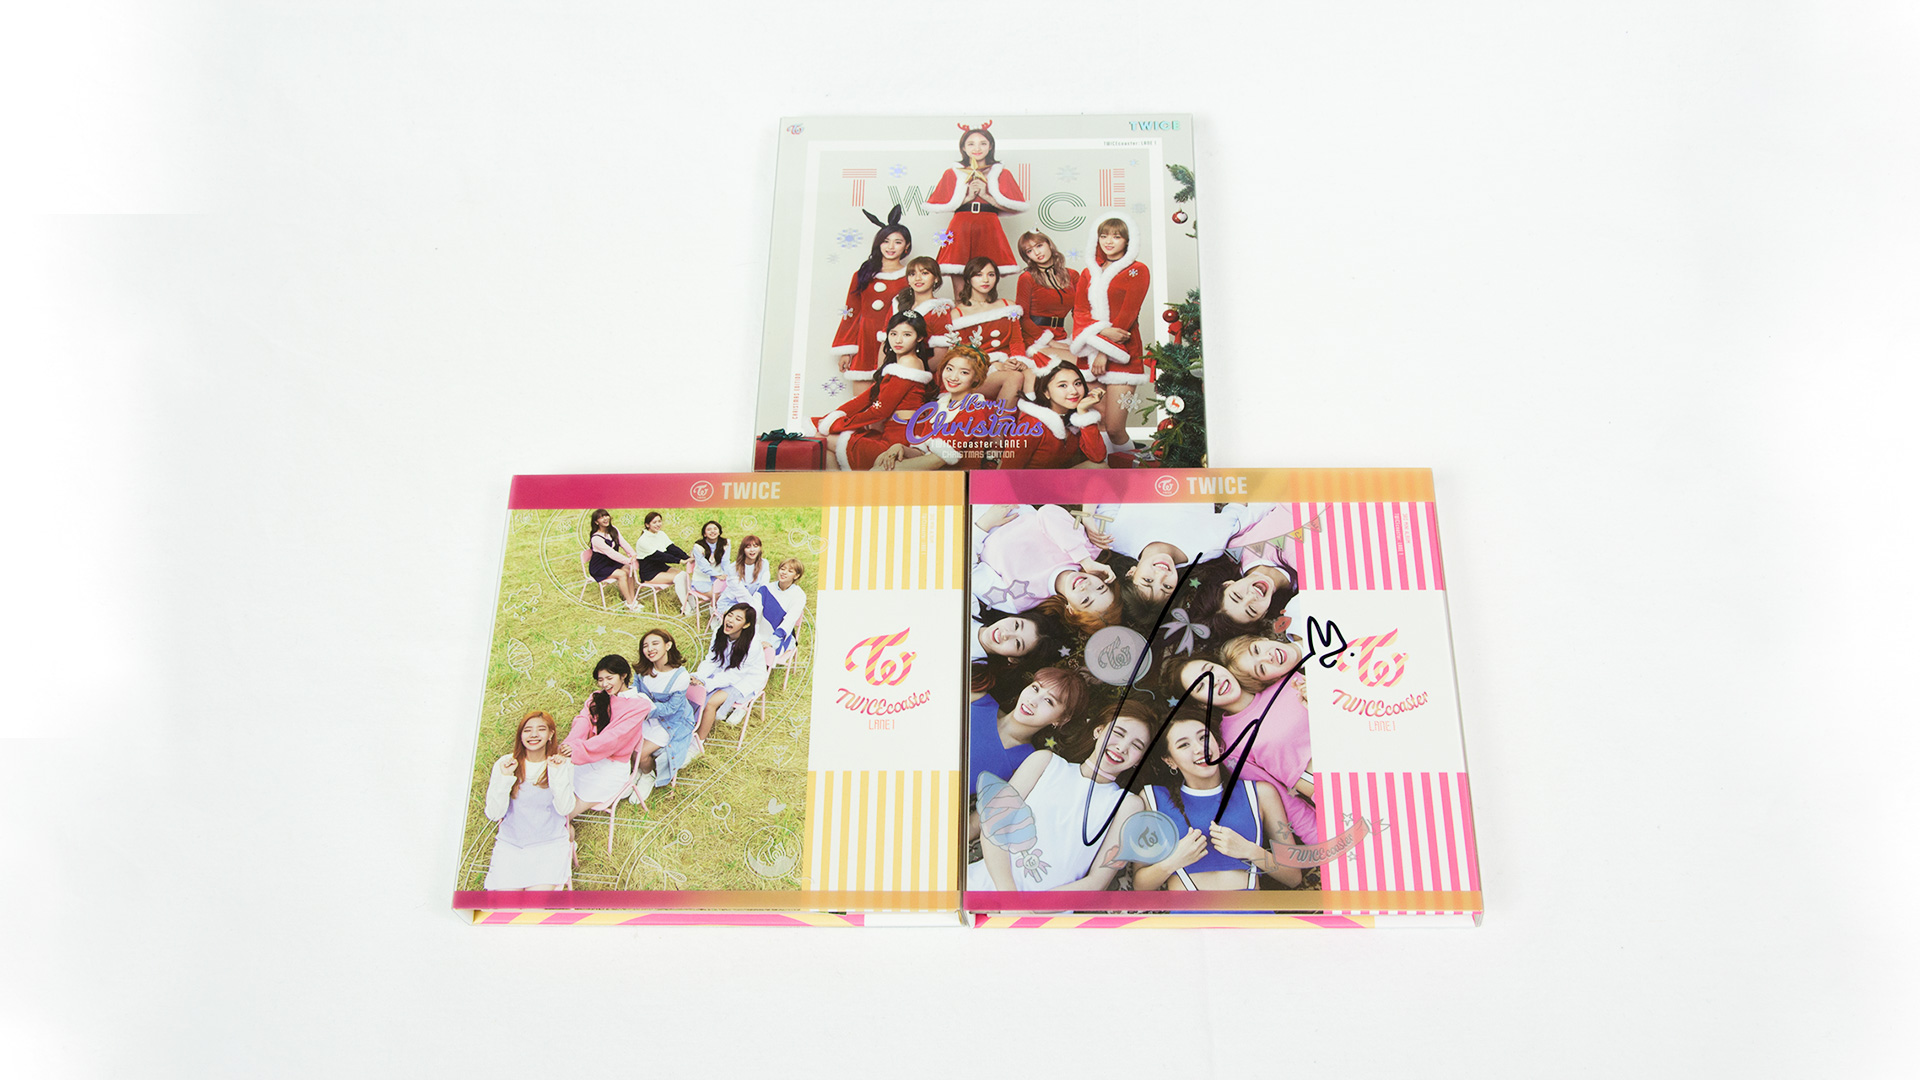 Twice – TWICEcoaster Lane 1